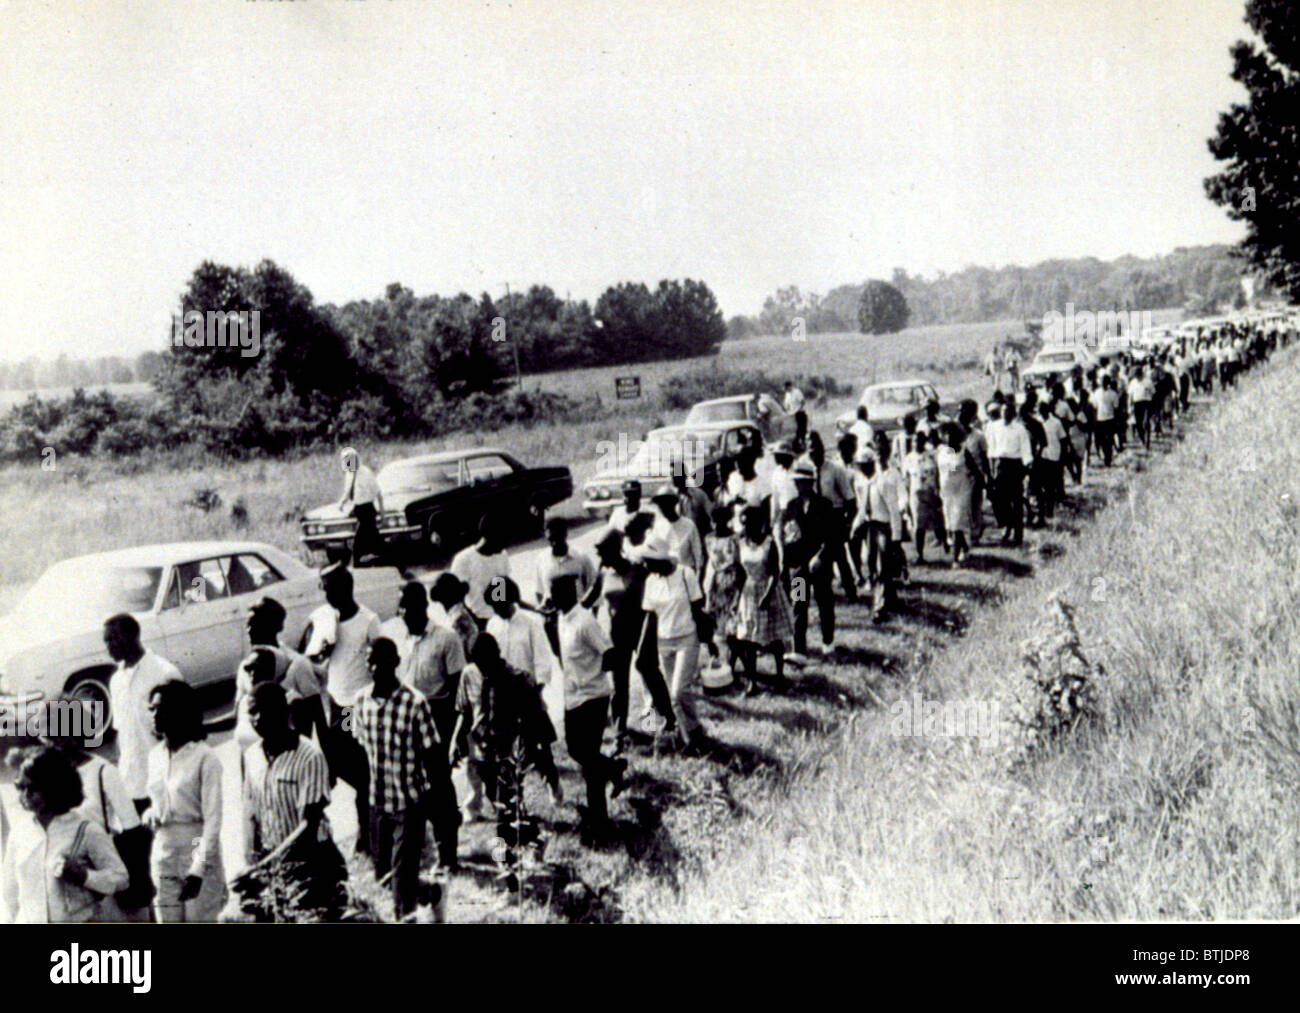 Civil Rights march from Memphis to Jackson, Mississippi, in 1966 - Stock Image